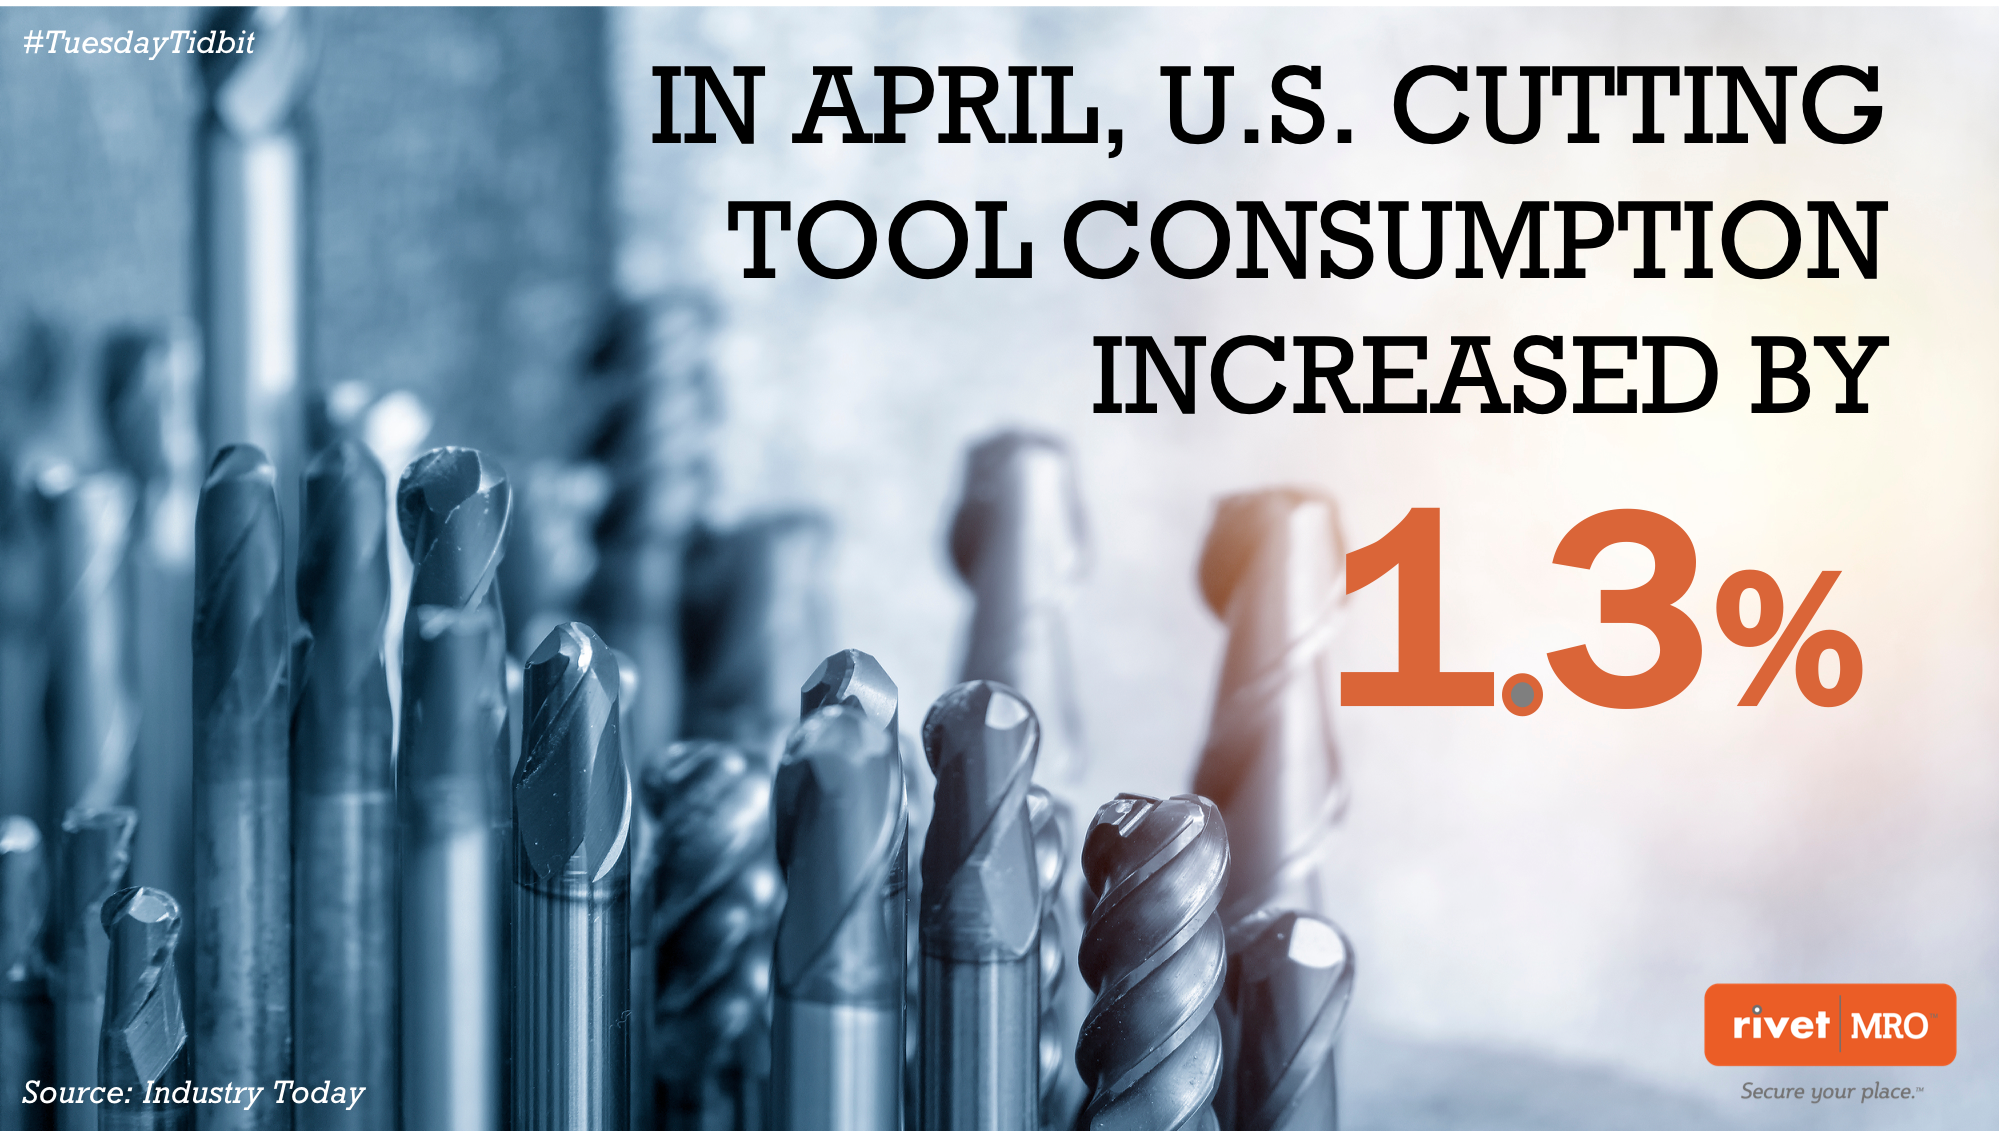 U.S. Cutting Tool Consumption Increased by 1.3% in April.png